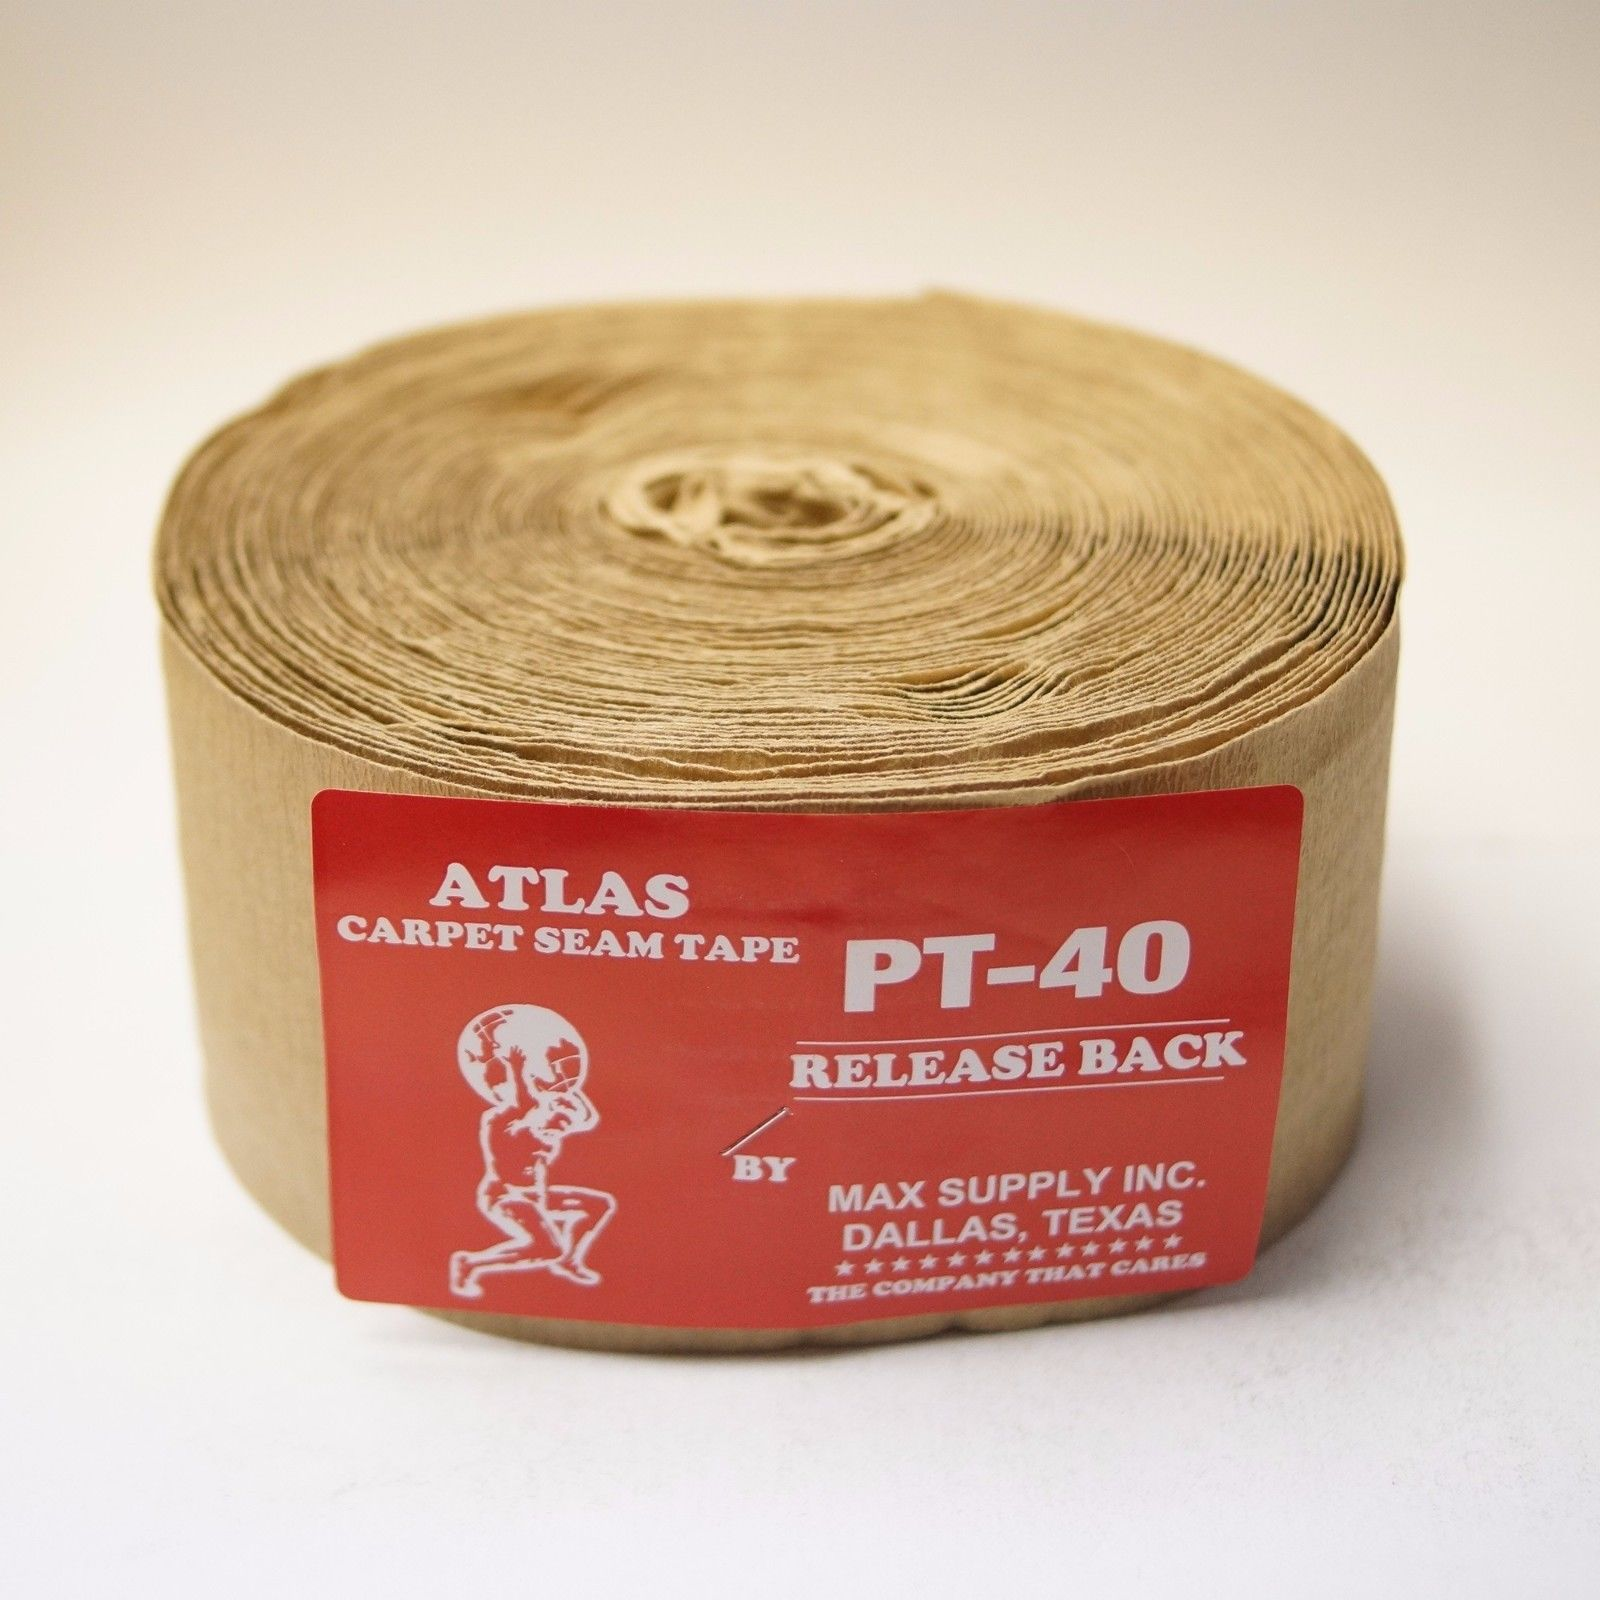 "4"" Release Back 9 Bead Carpet Seam Tape - Single Roll"